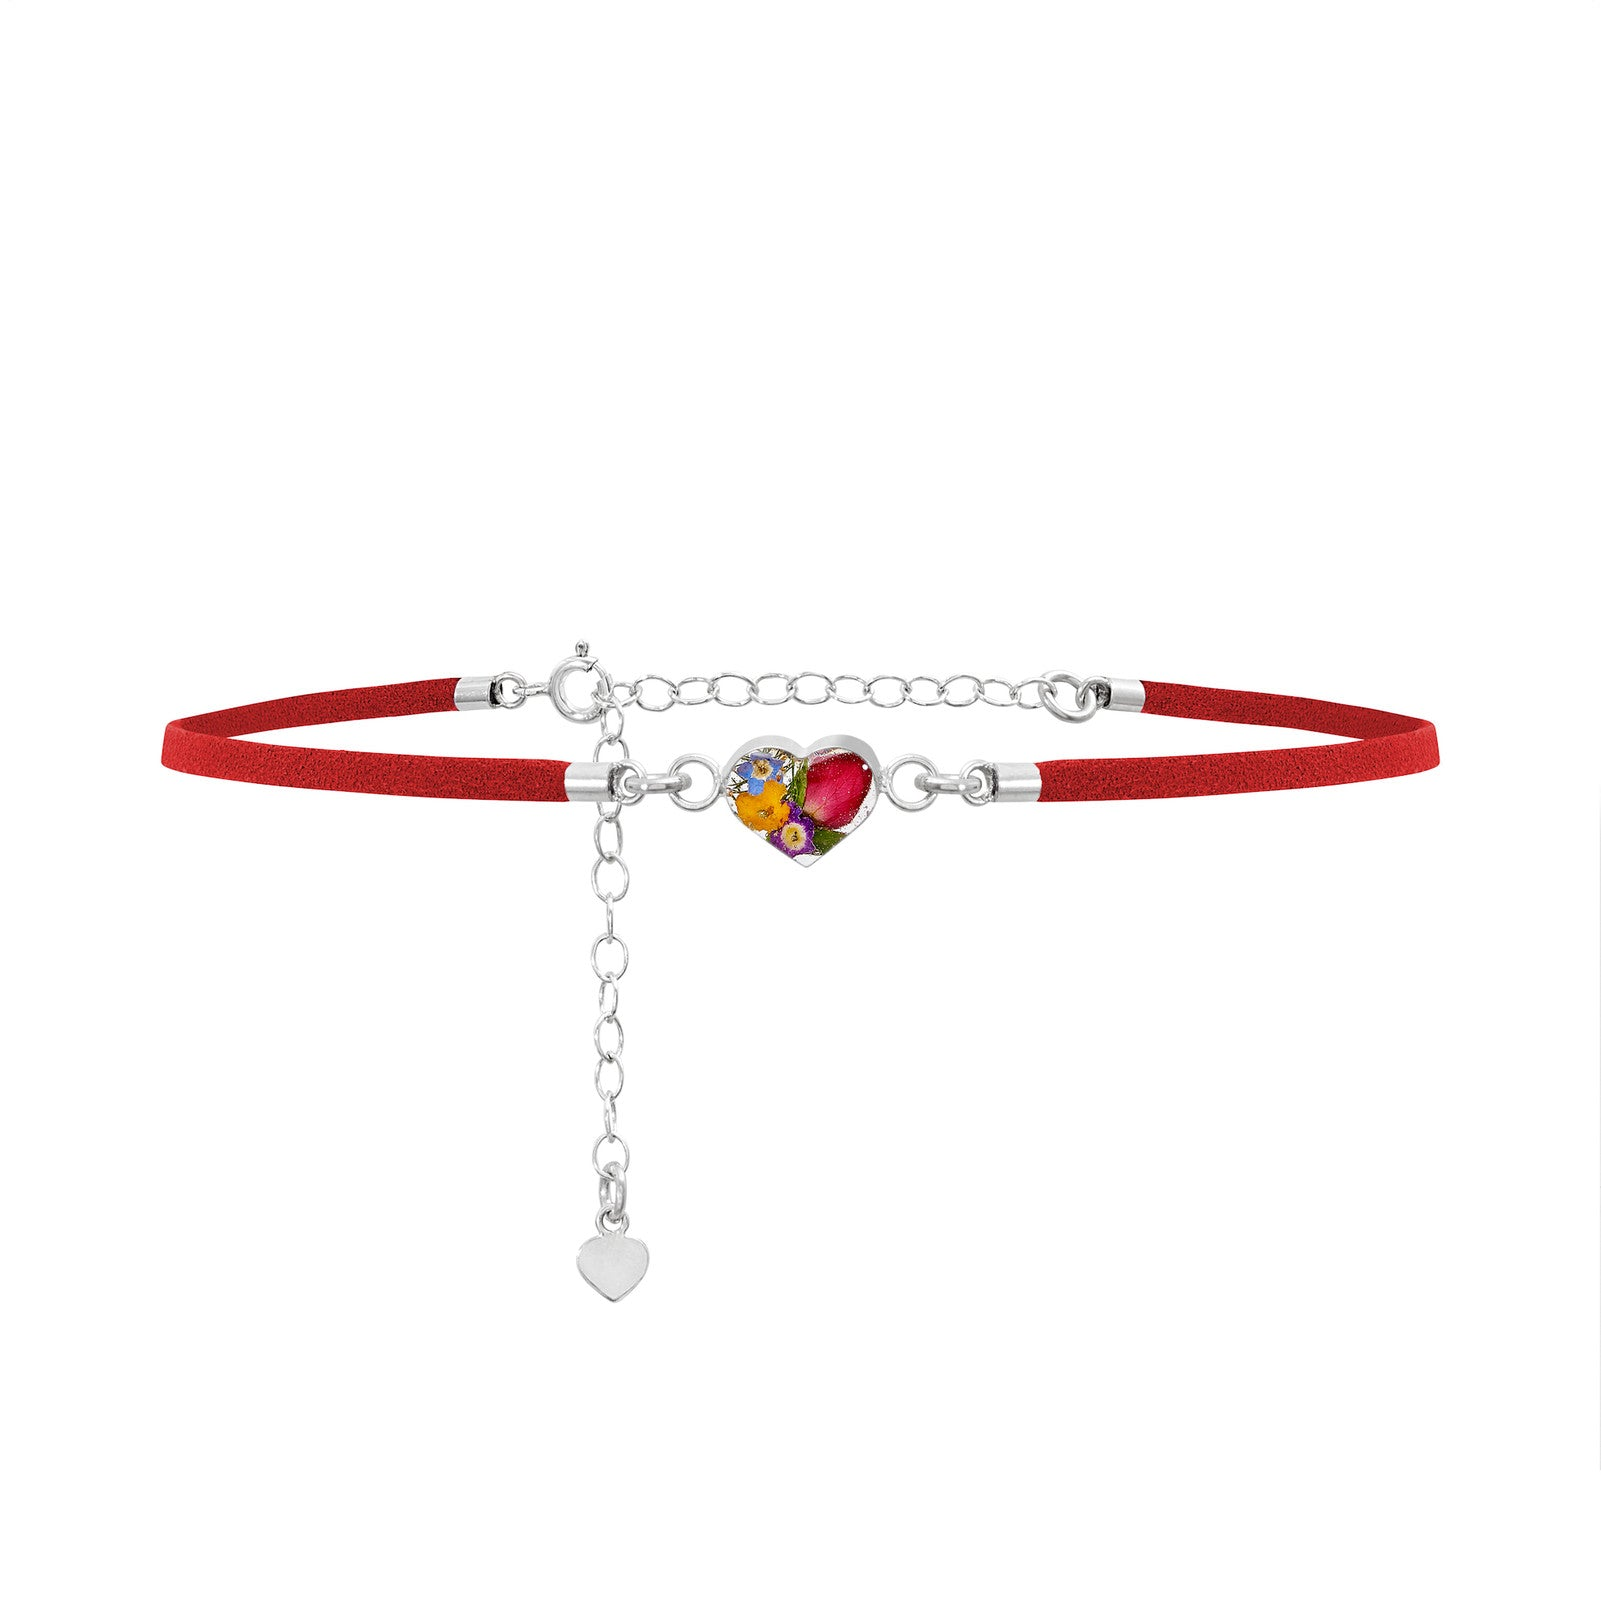 Charm Choker Necklace with real flowers - Red Leather Look - Sterling Silver Chain